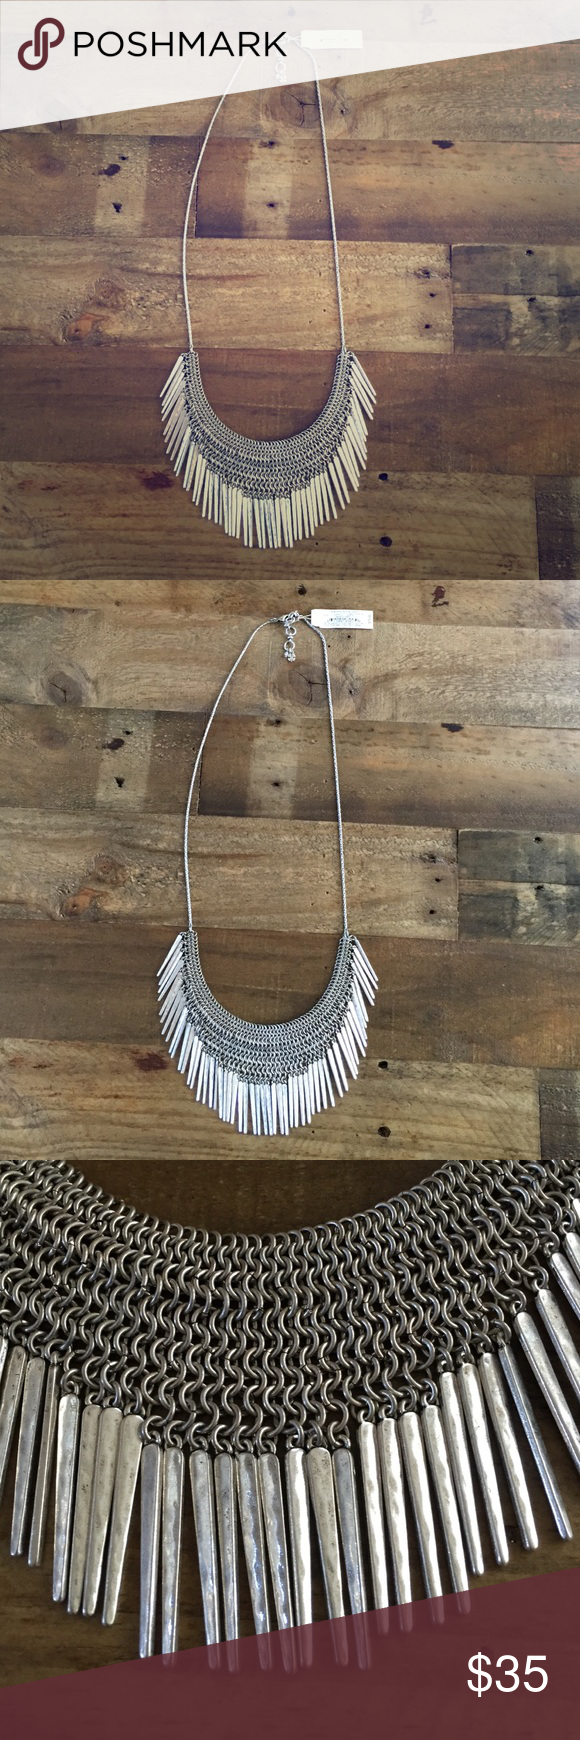 NWT Lucky Brand Silvertone Statement Necklace New with tags Lucky Brand Jewelry Necklaces